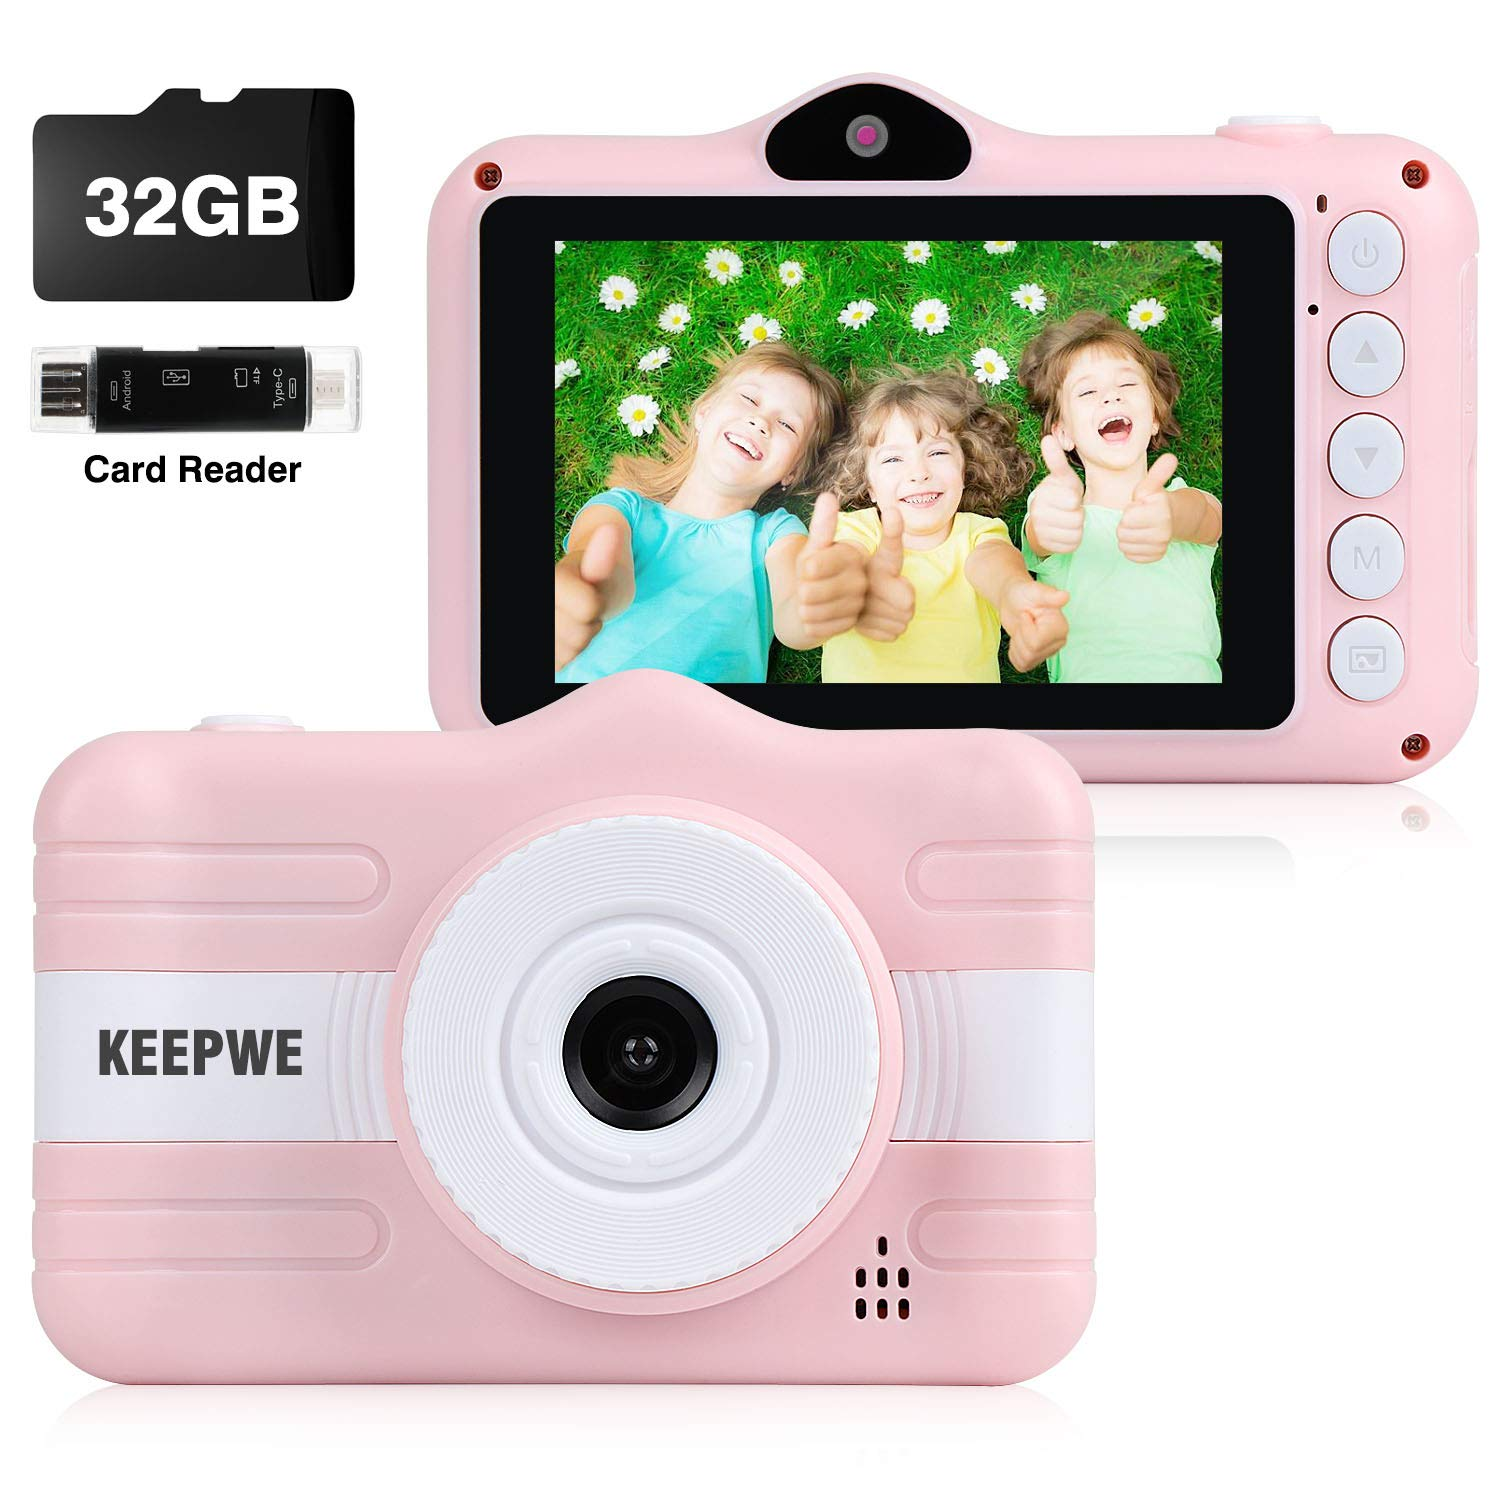 Kids Camera, Digital Camera for Kids Gifts, Camera for Kids 3-10 Year Old 3.5 Inch Large Screen with 32GB SD Card, SD Card Reader, 2019 Upgraded (Pink) by keepwe